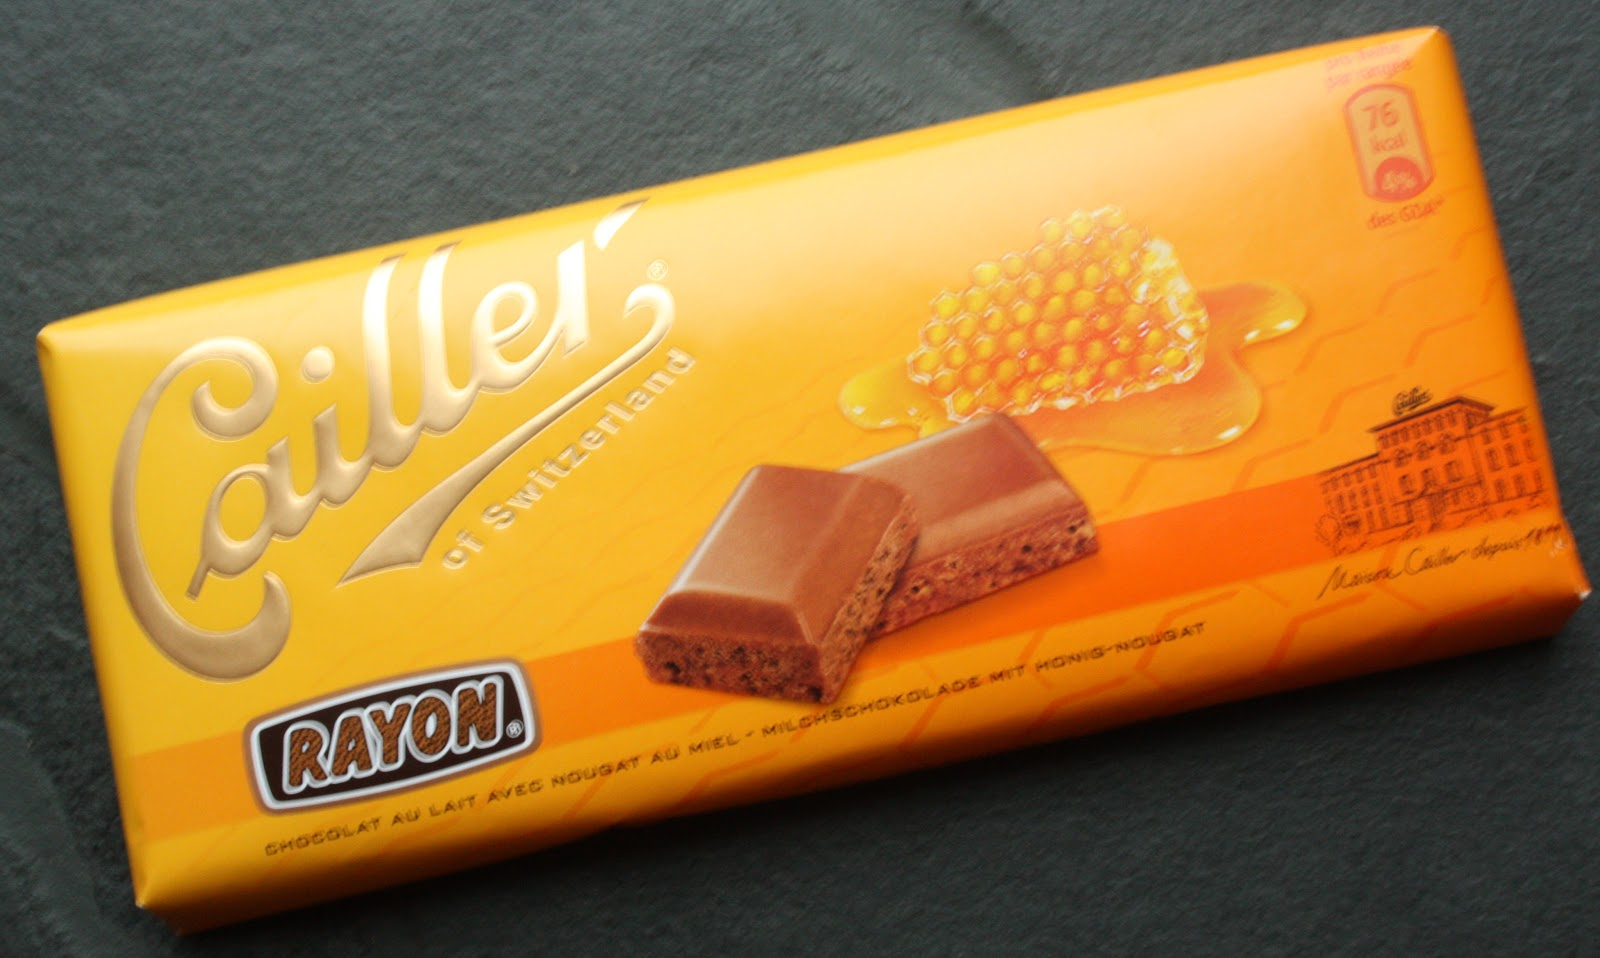 The World of Chocolate: Rayon by Cailler of Switzerland